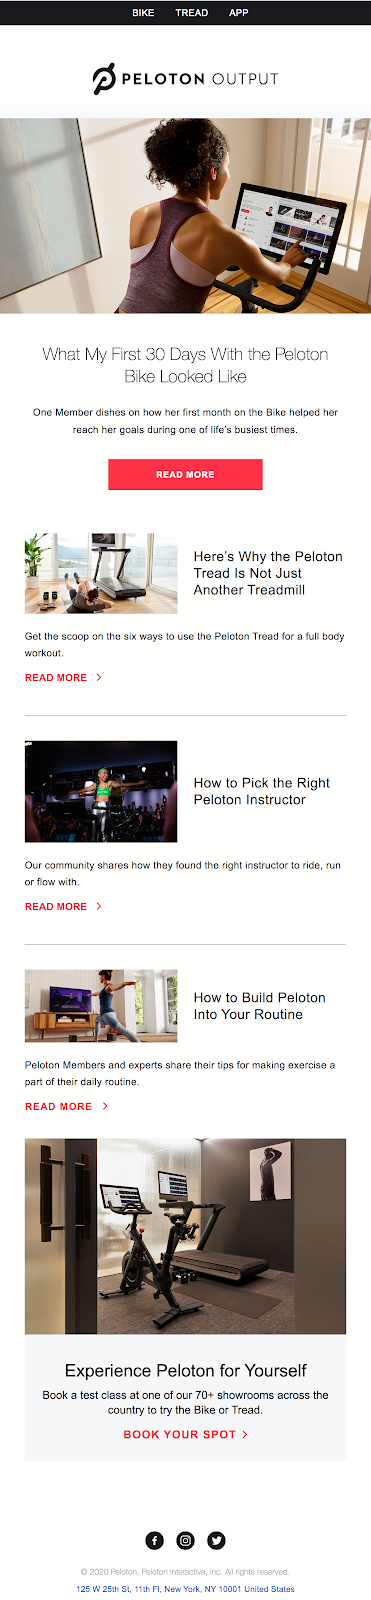 Peloton what my first 30 days looks like email